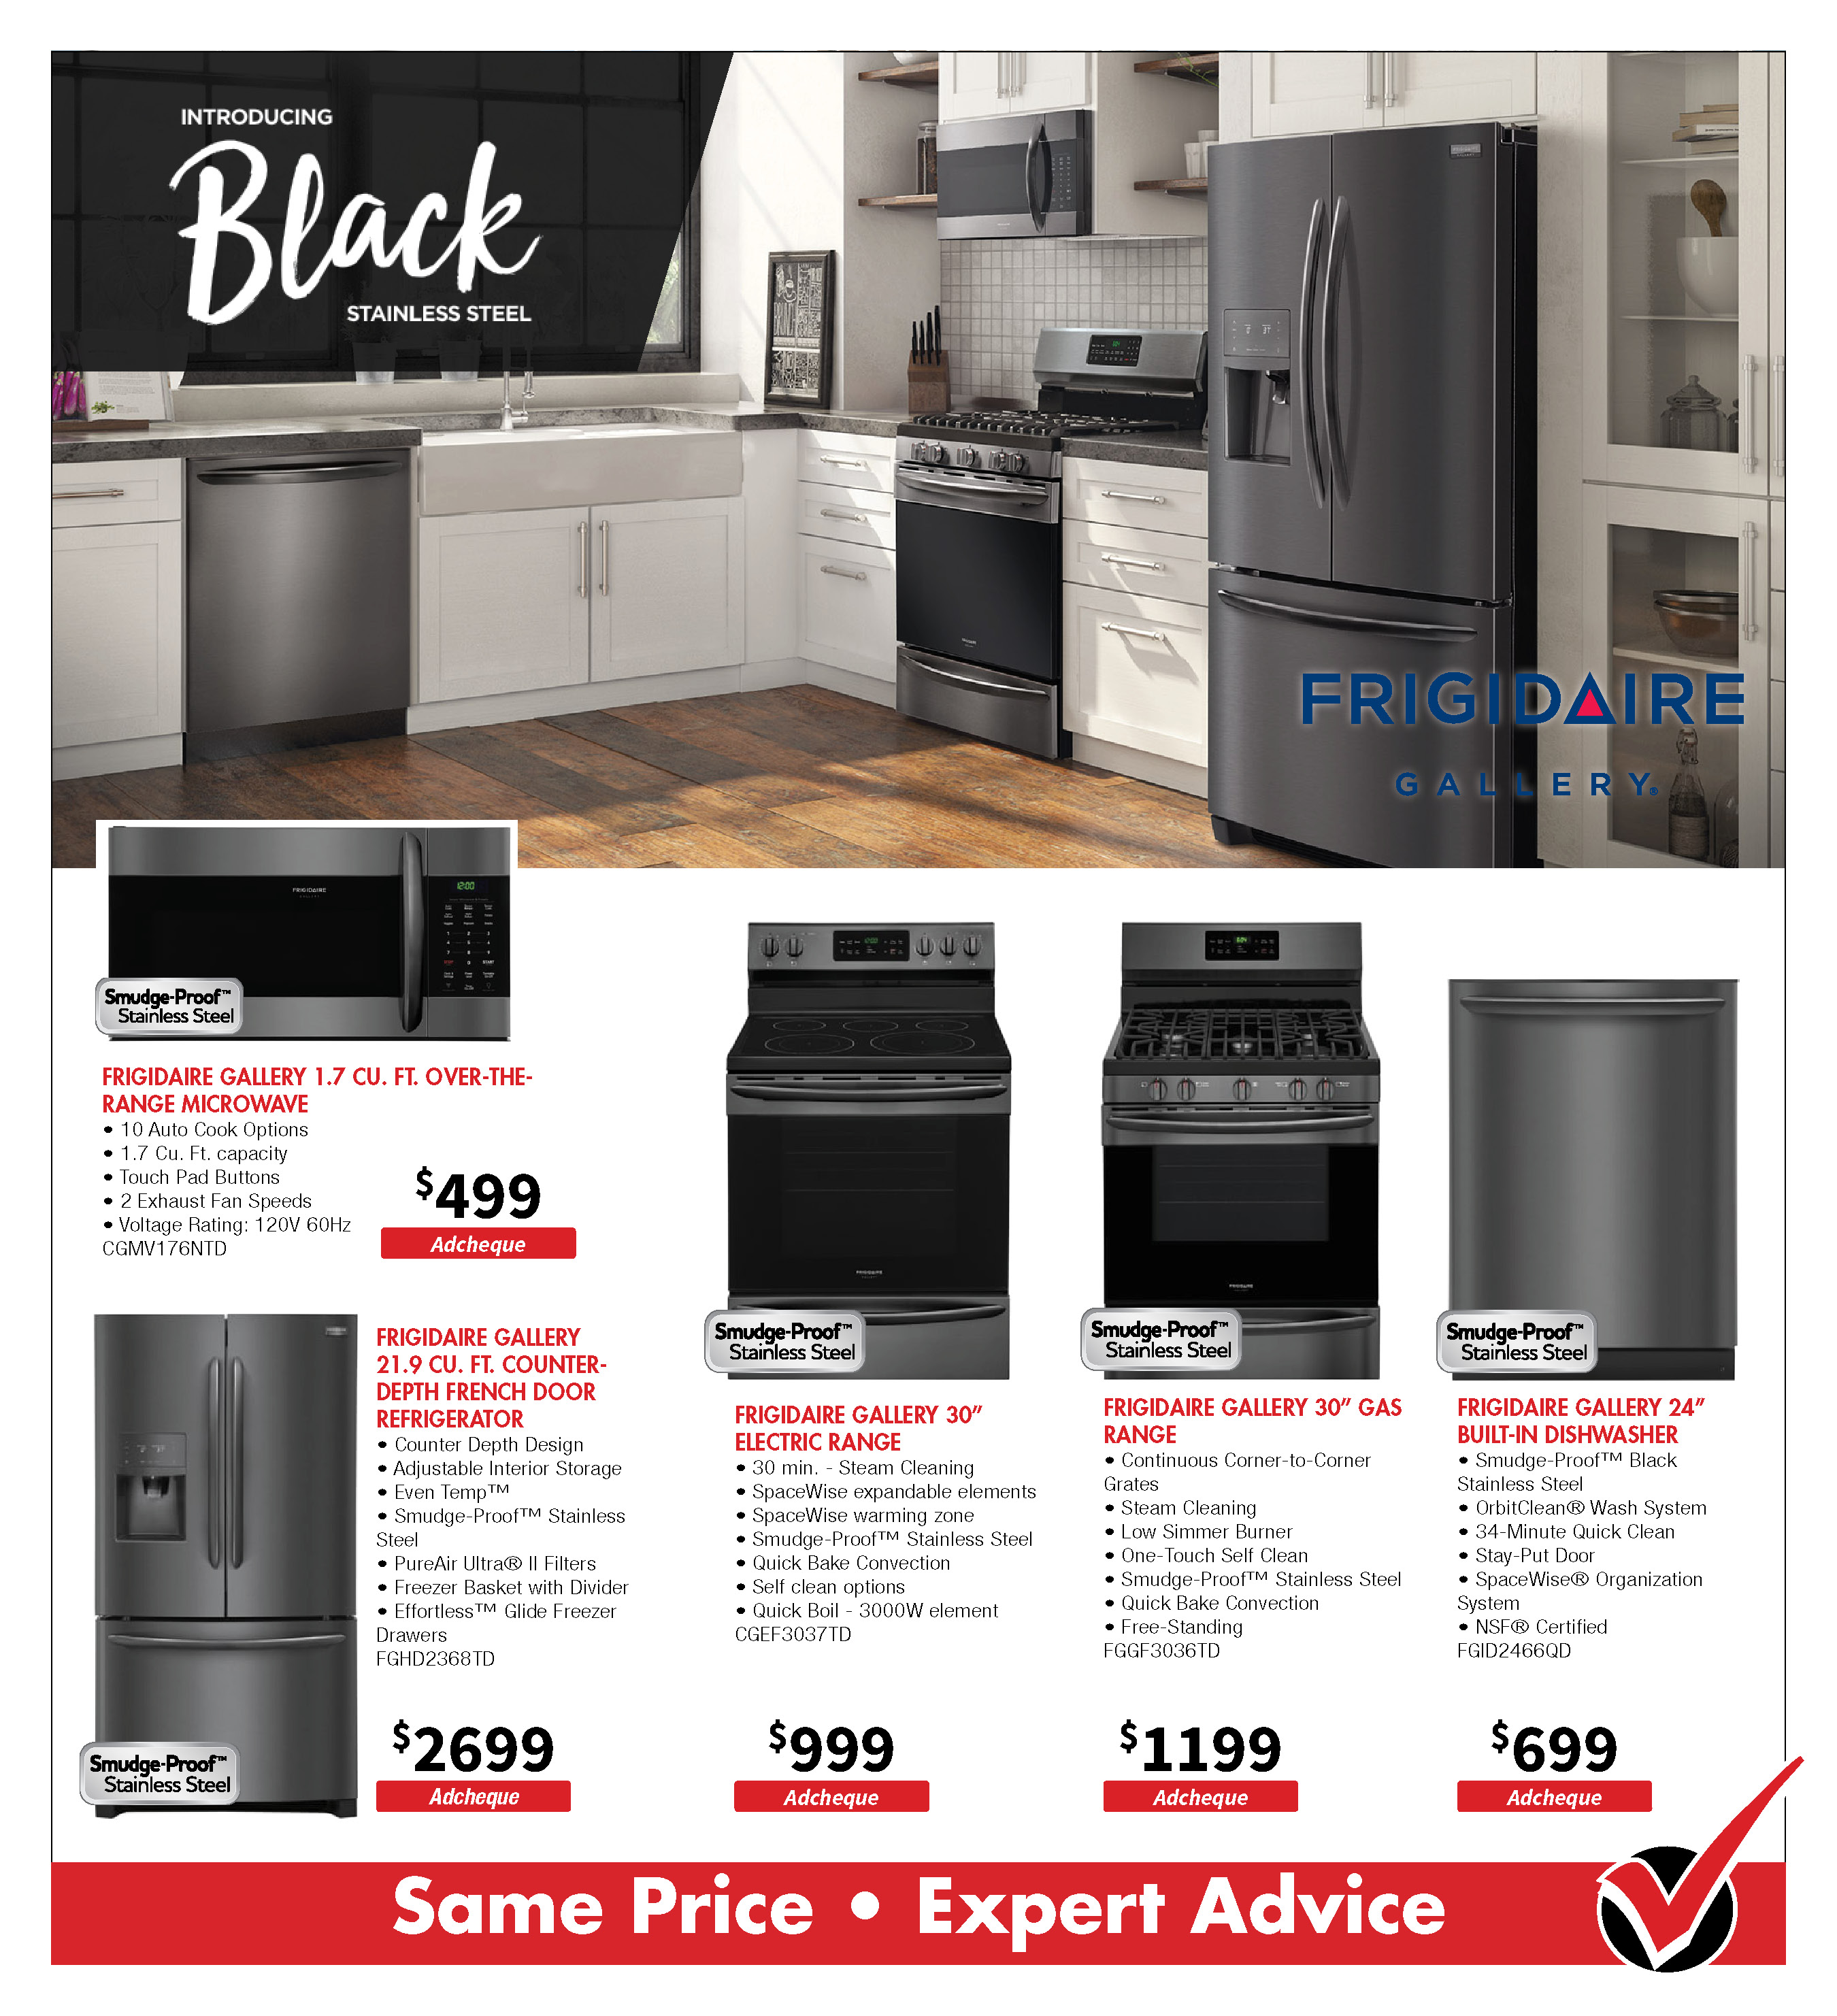 Frigidaire Black Stainless